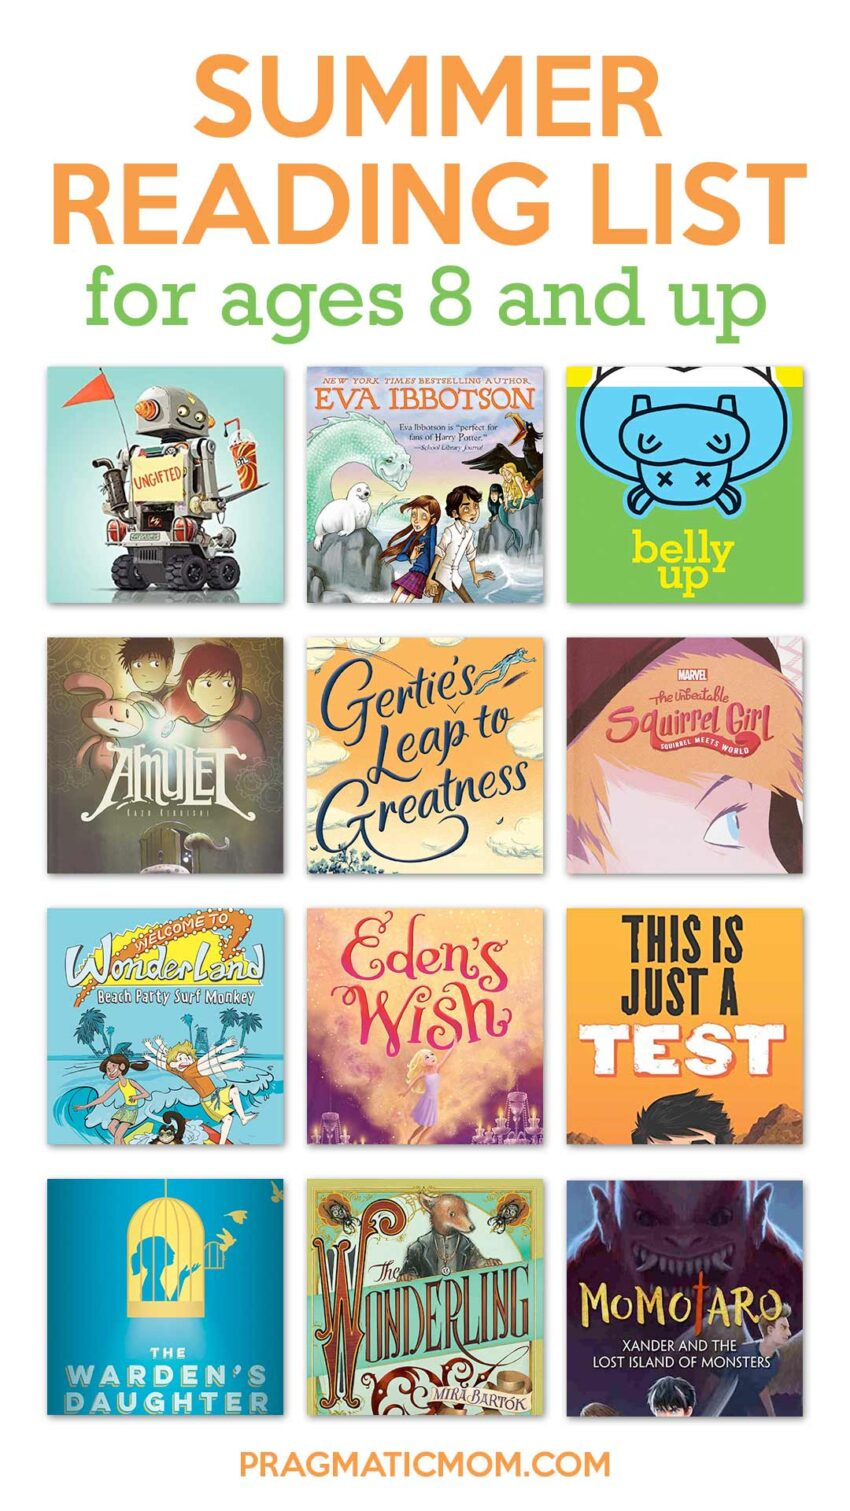 Summer Reading List for ages 8 and up